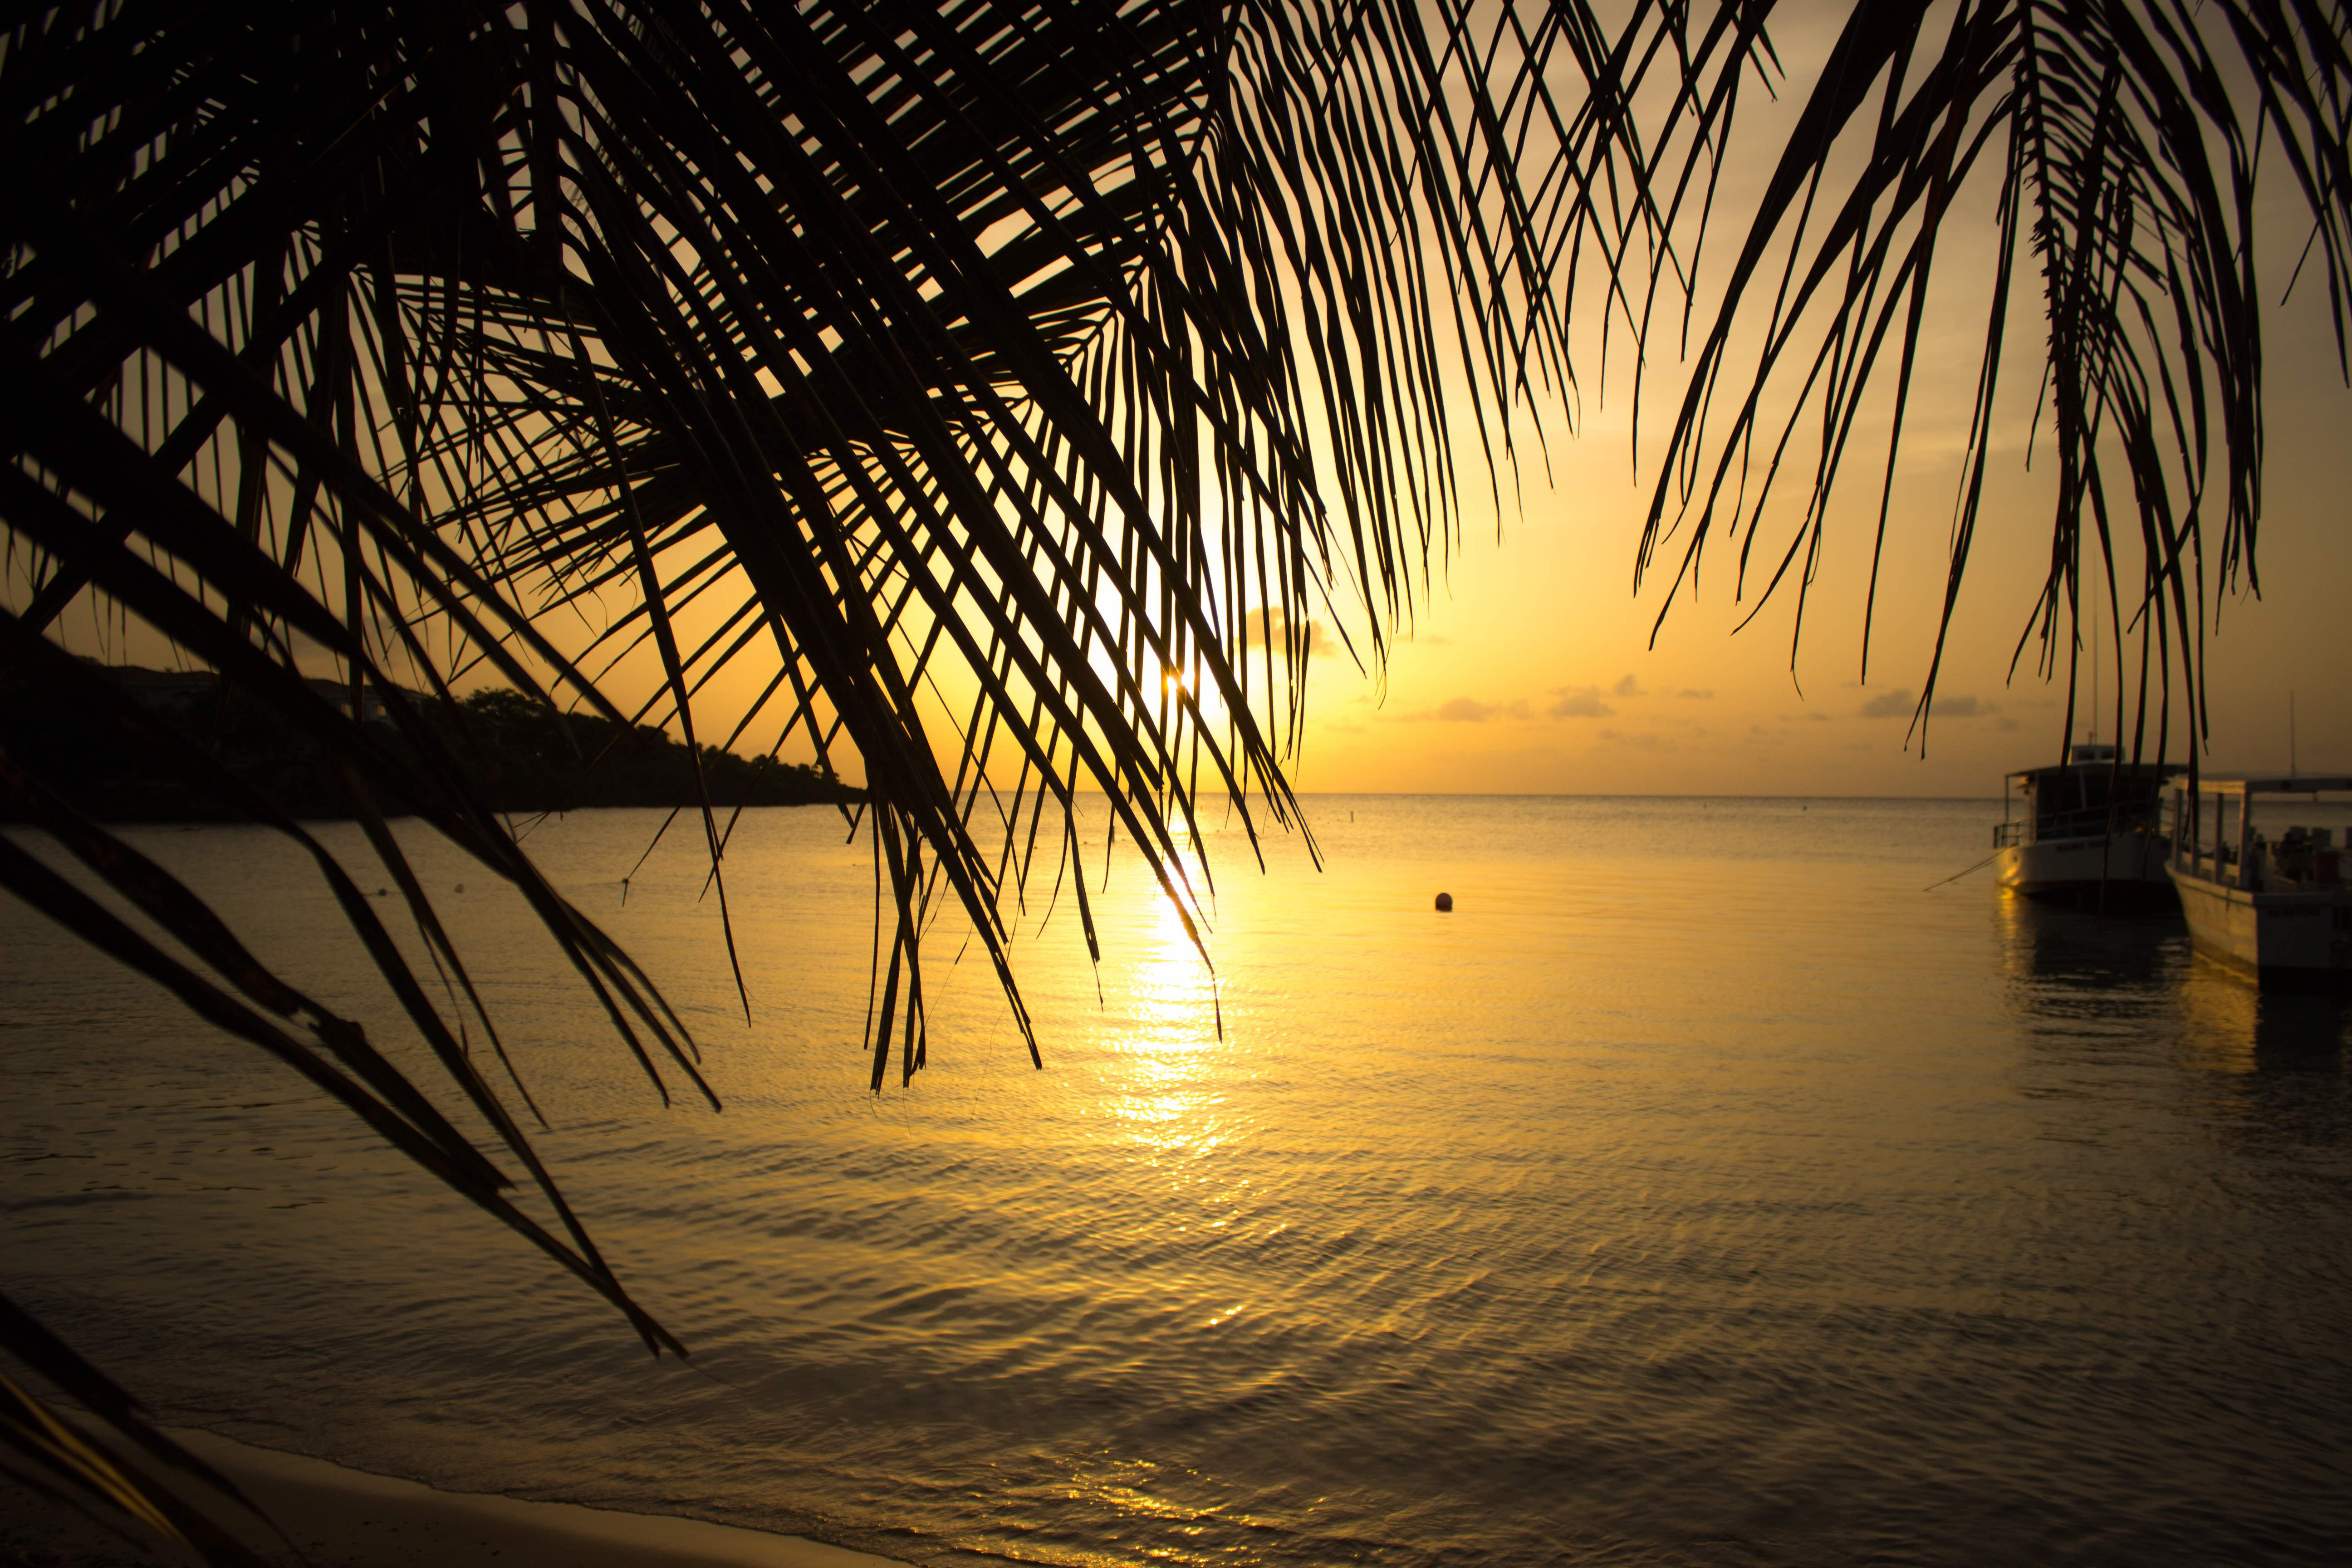 sunset in roatan from coconut tree divers